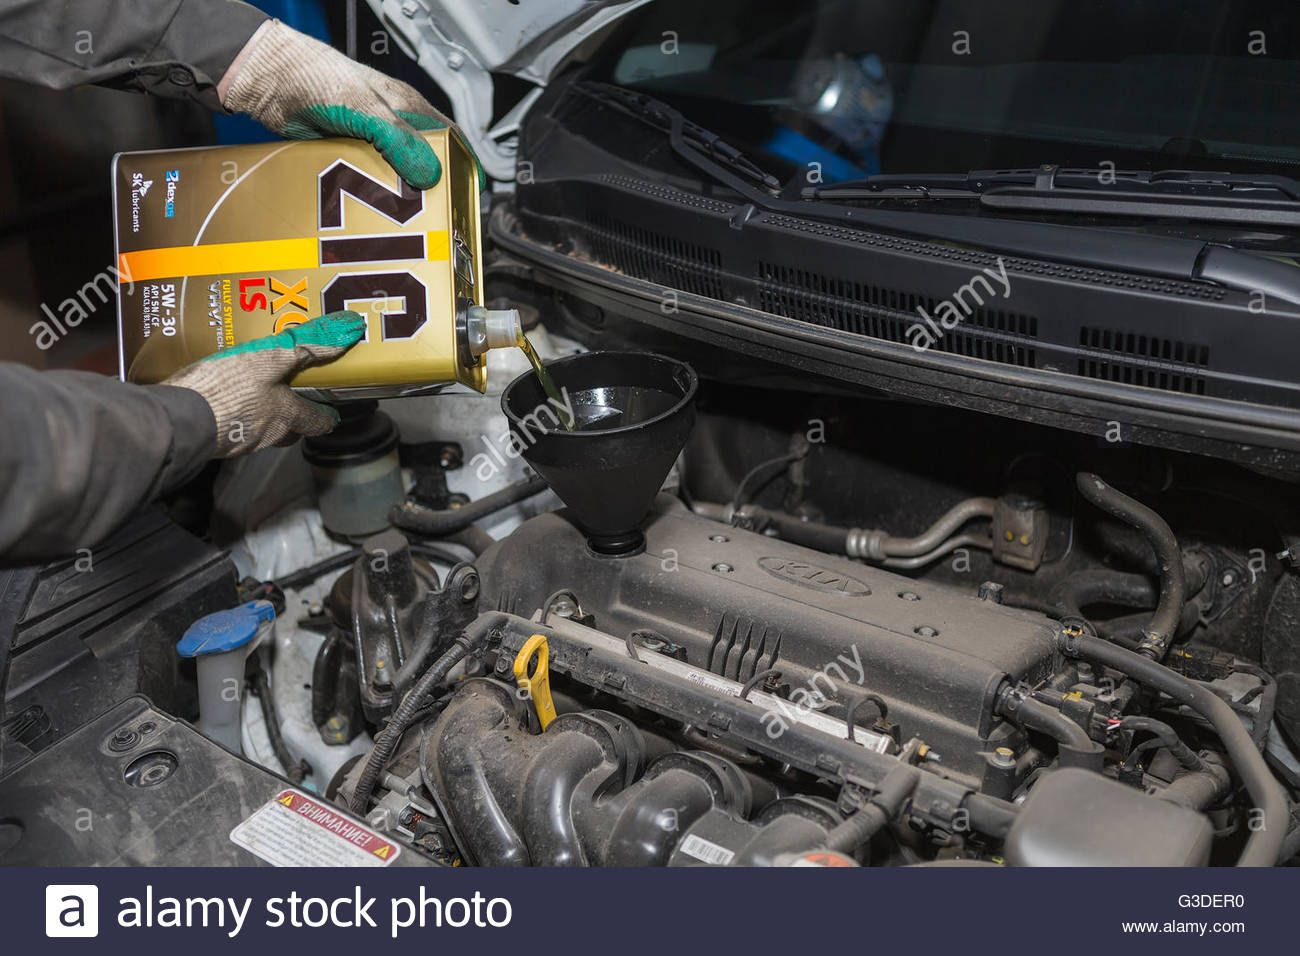 Download this stock image Mechanic checking the oil level